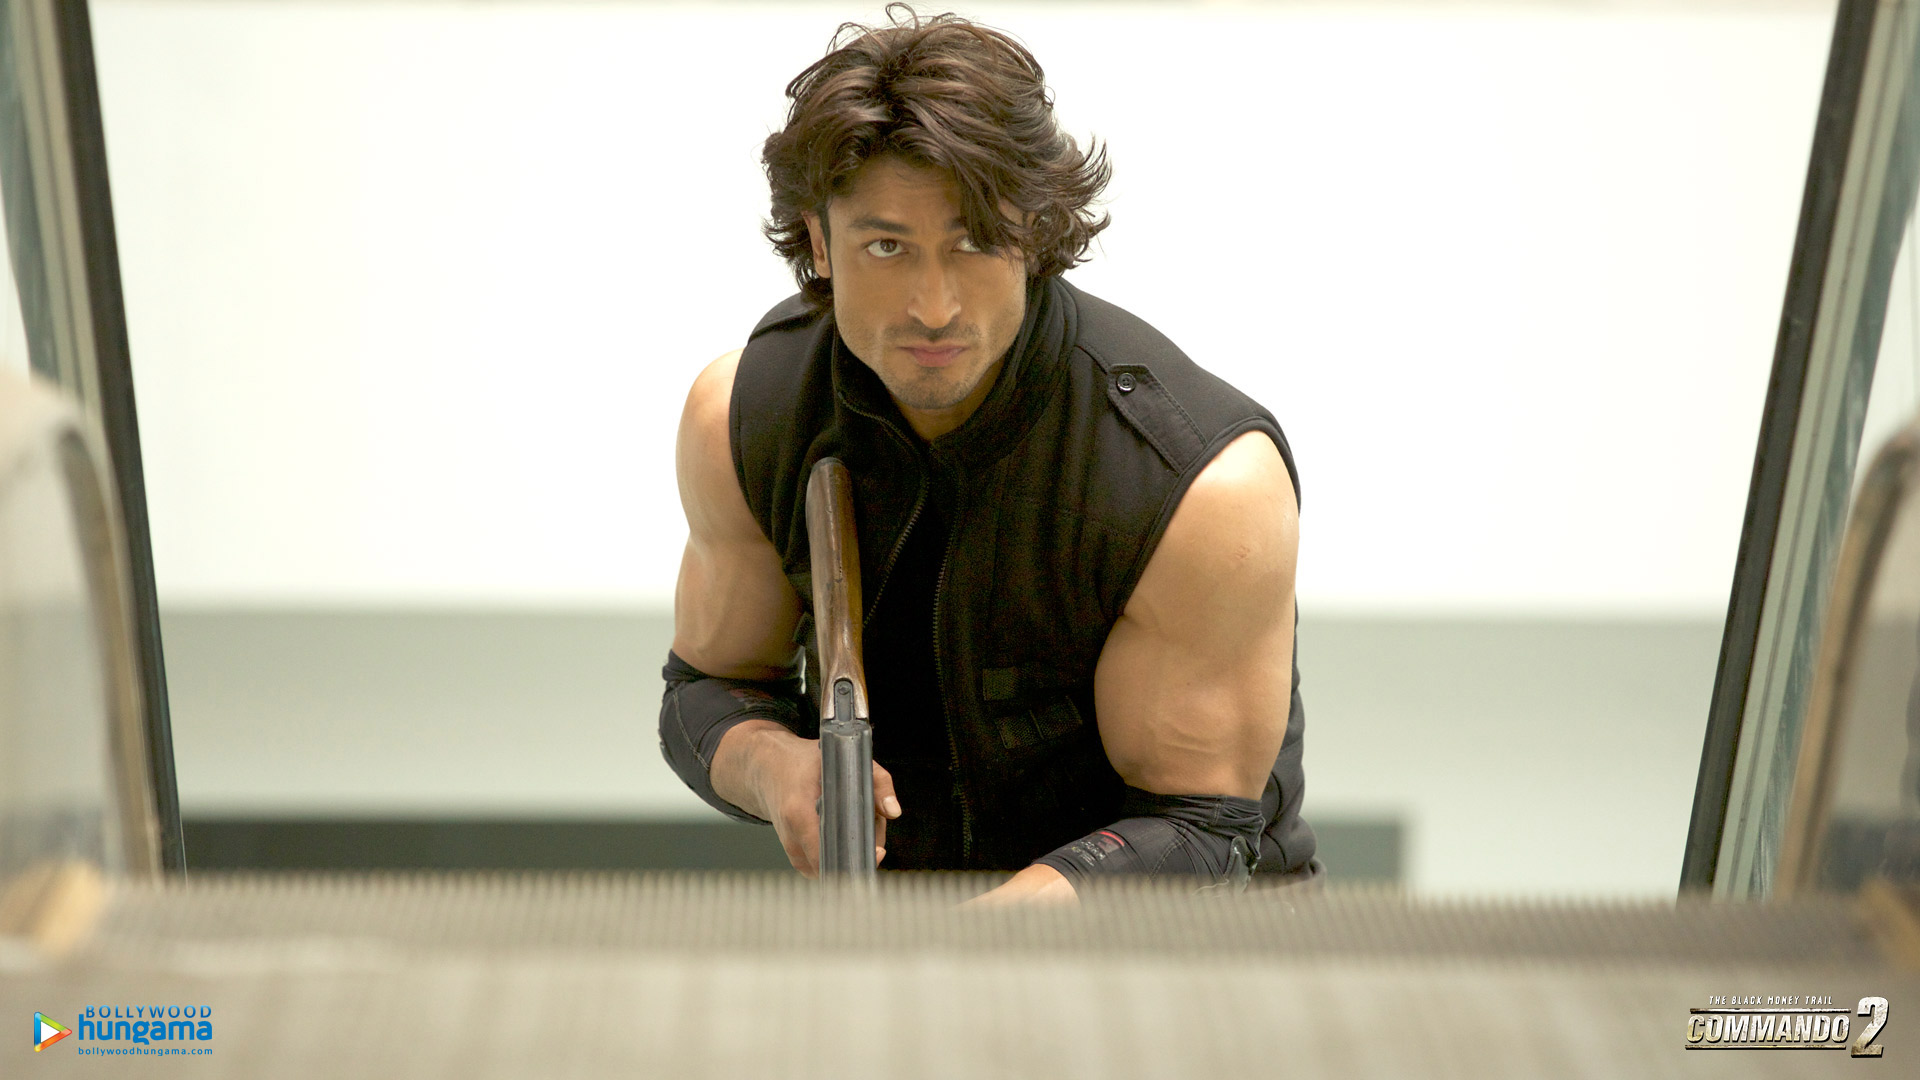 Commando 2 Wallpaper: Commando-2-3-7 - Bollywood